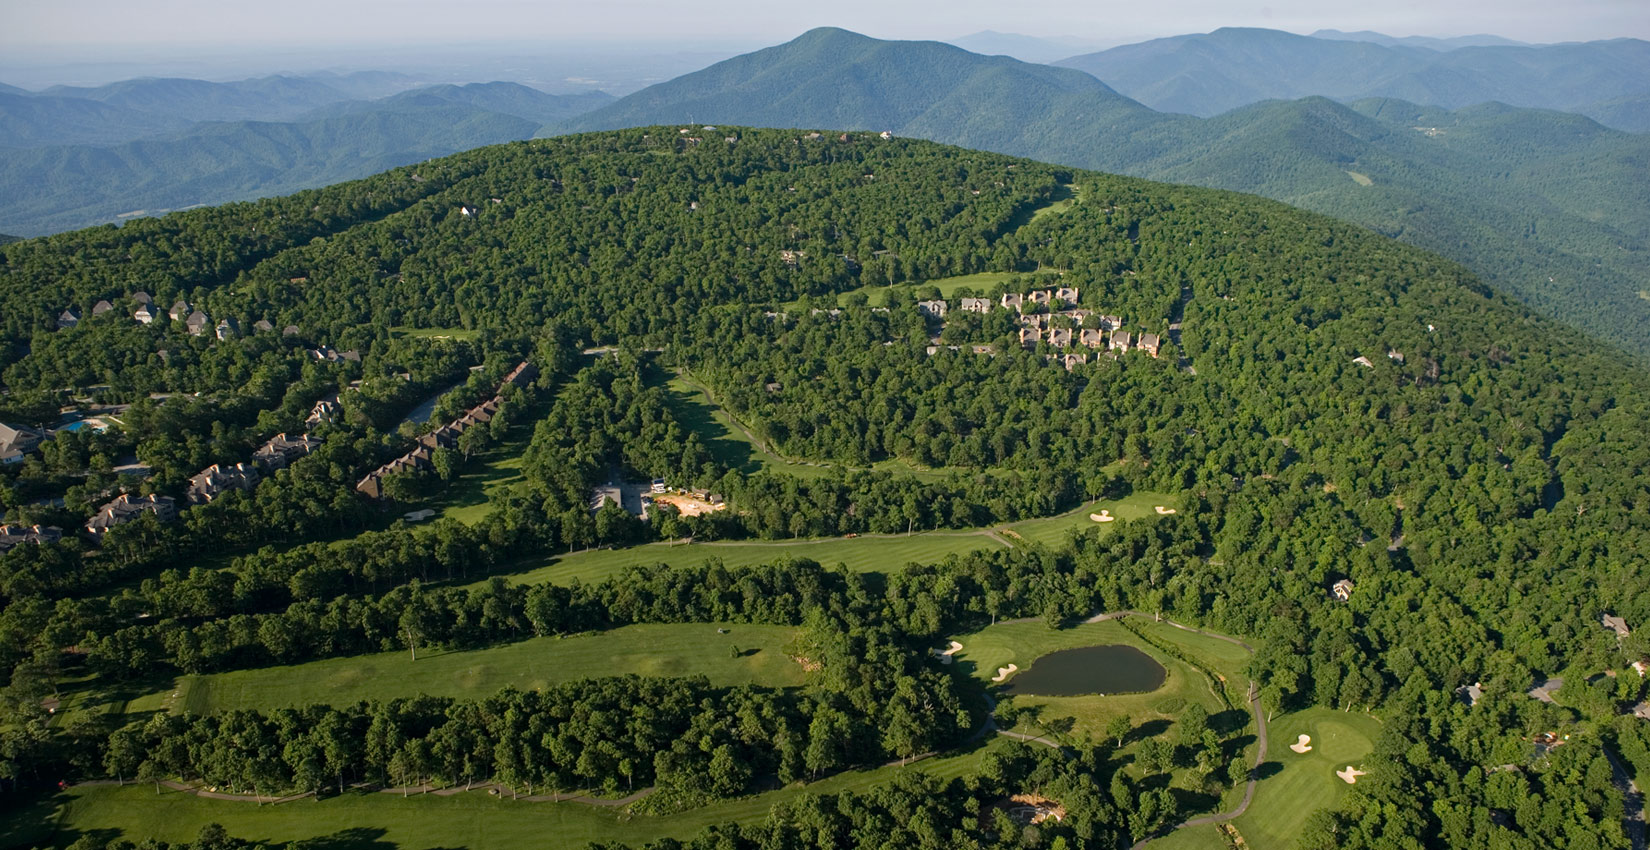 mountain golf in the blue ridge mountains at wintergreen resort in virginia